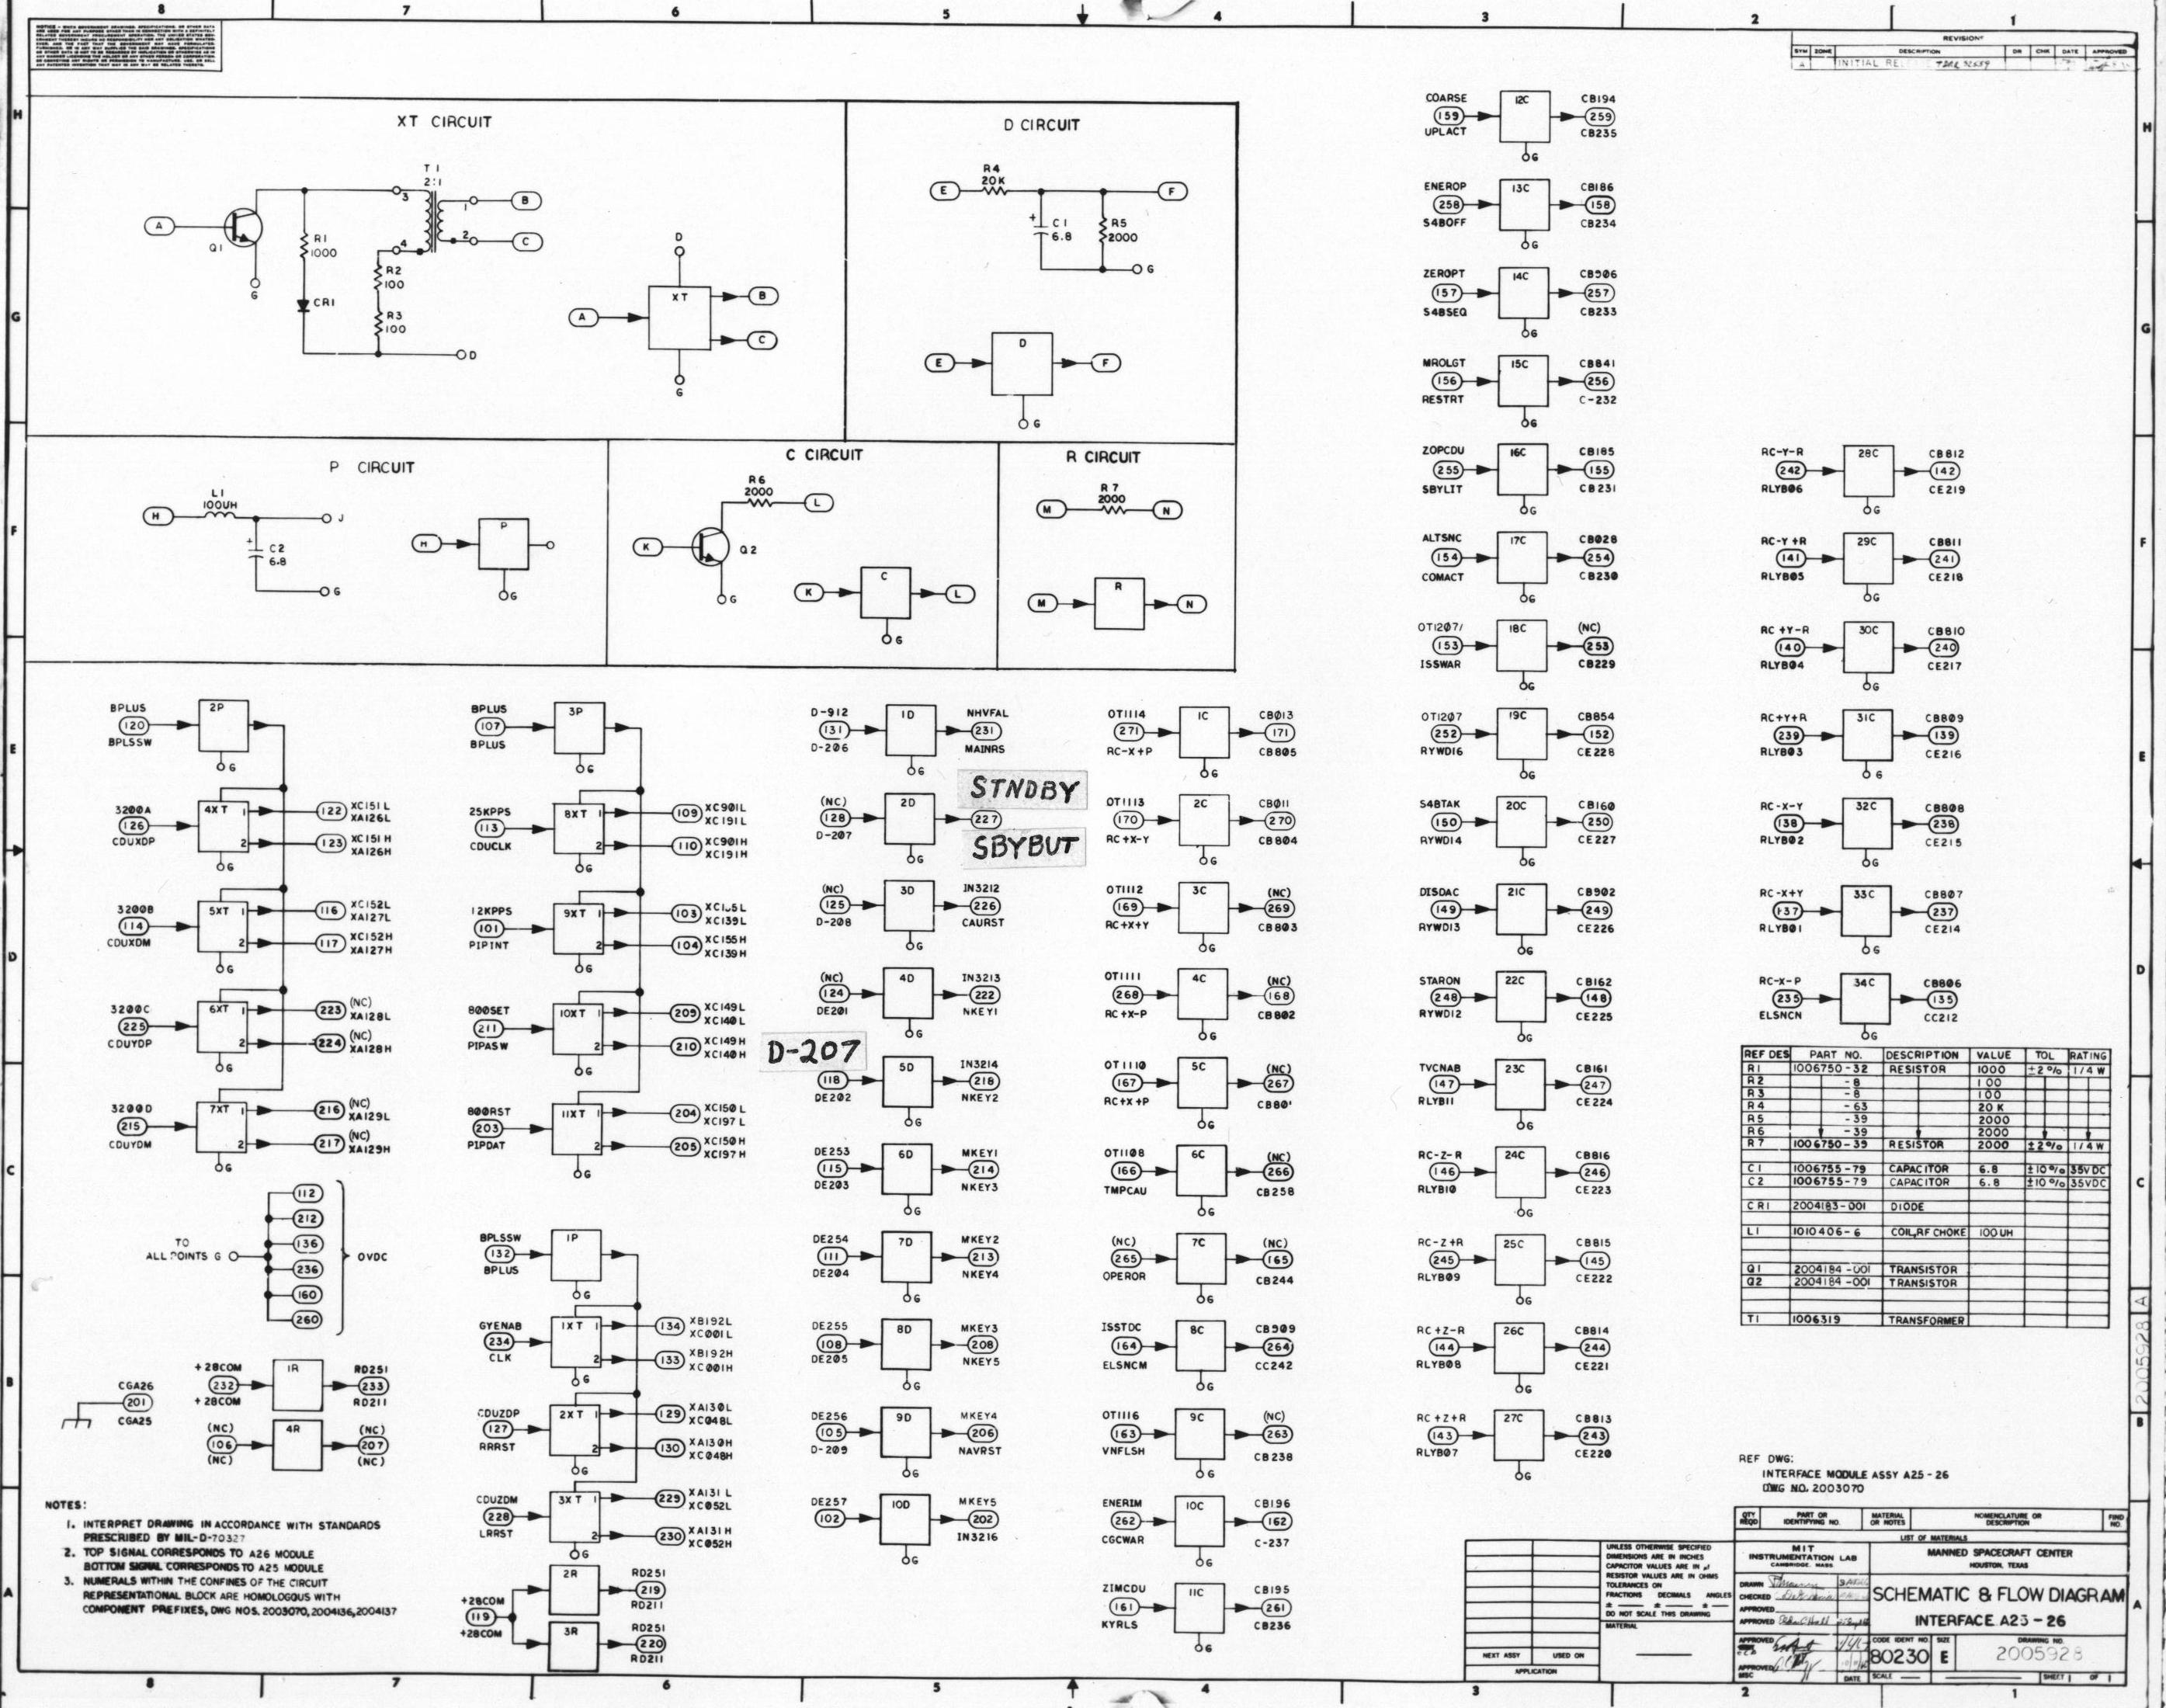 Apollo Guidance Computer Agc Schematics Circuit Diagram Nc Sheet 1 2 Schematic And Flow